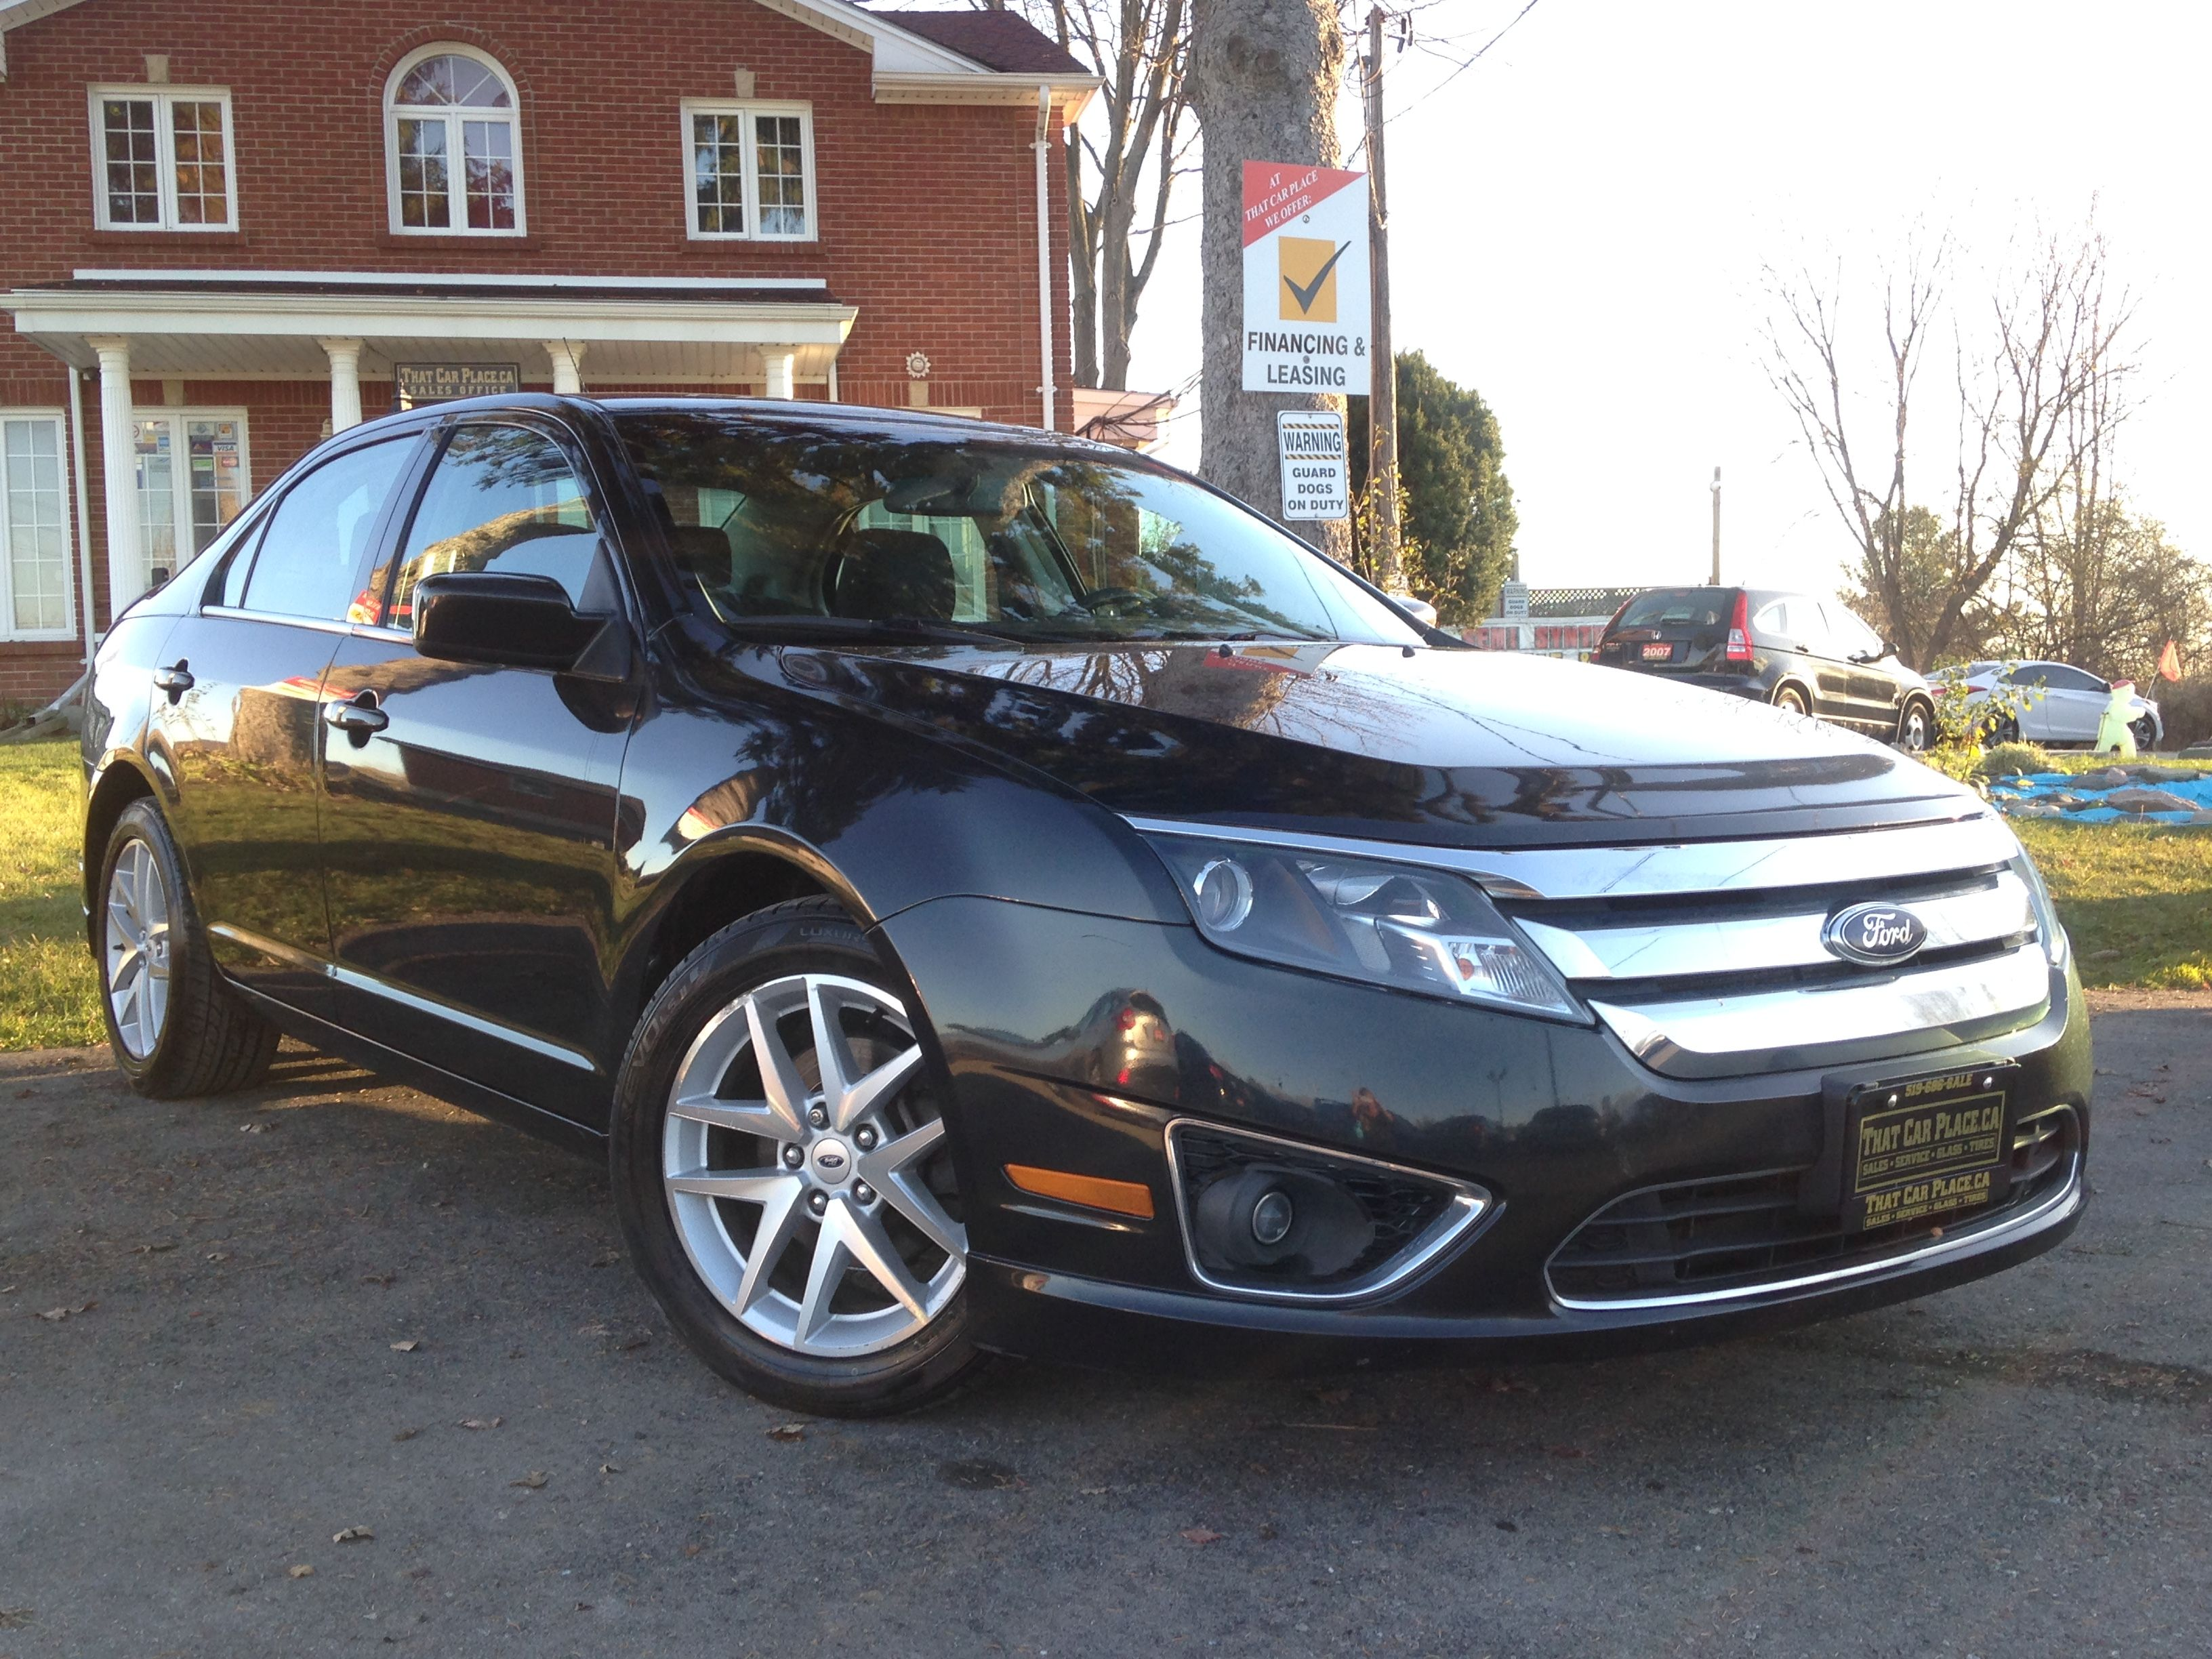 Heres Another Gem The 2012 Ford Fusion Automatic Transmission With 140km And A 4cyl 2 5 Litre Engine Payments Are Find Cars For Sale Cars For Sale